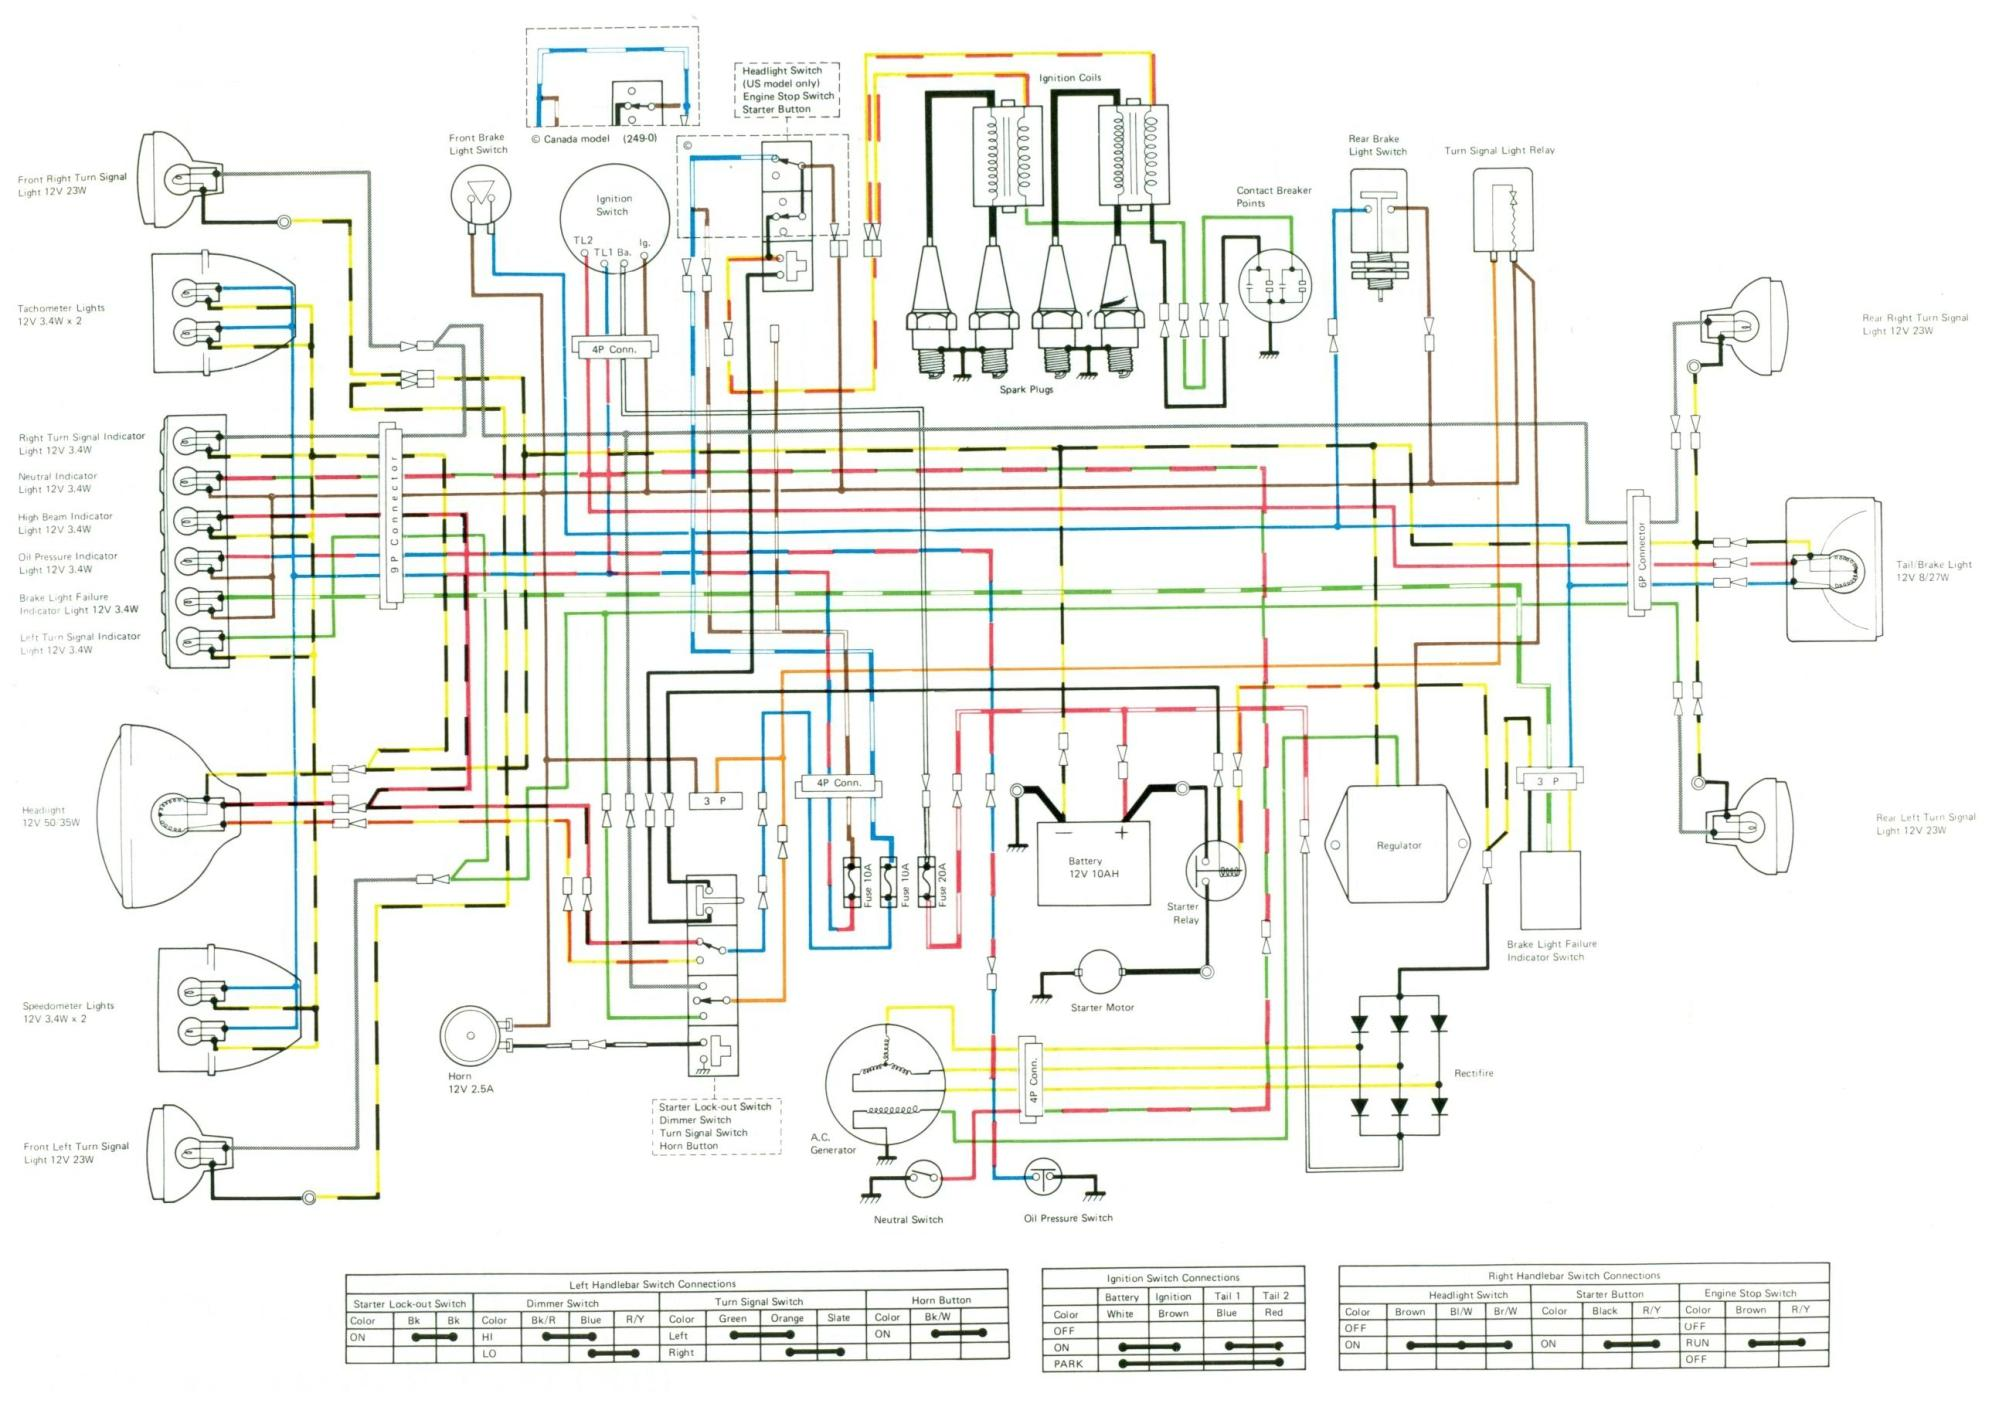 hight resolution of kz1000 wiring diagram picture wiring diagram mega 1986 kz1000 wiring diagram